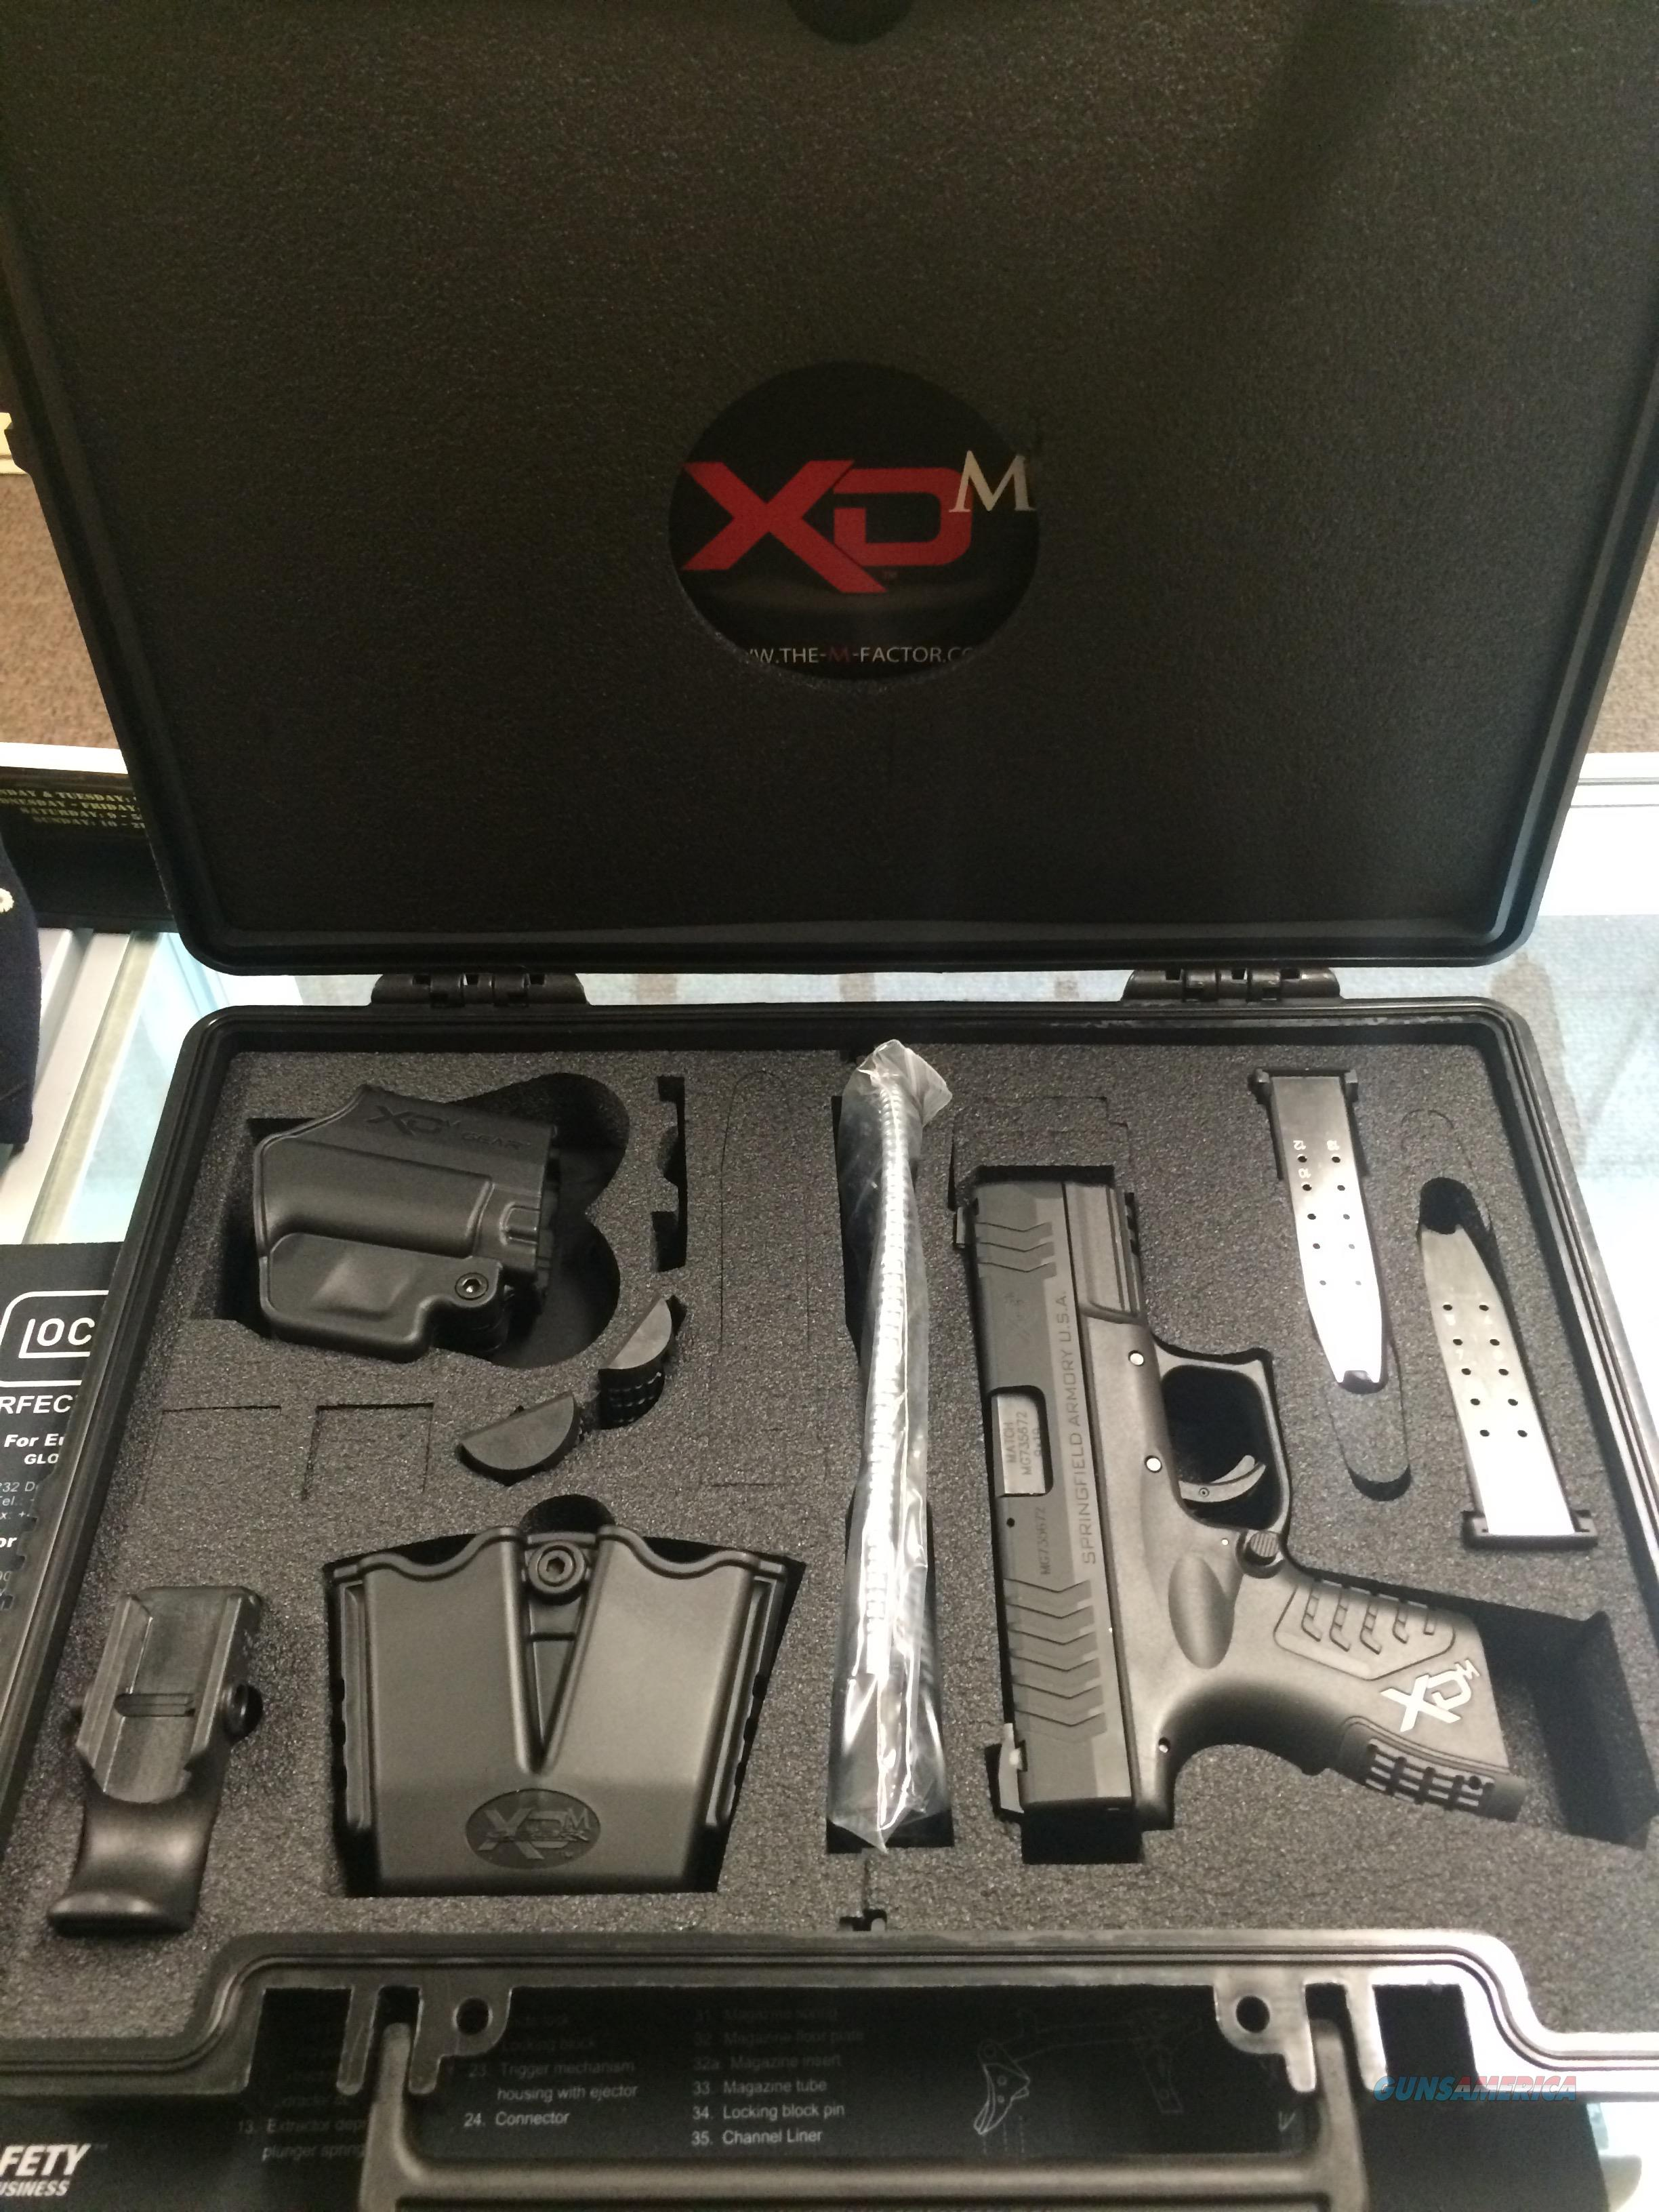 BRAND NEW SPRINGFIELD XDM9 COMPACT 3.8 13 & 15RND FREE SHIPPING! NO FEES!!   Guns > Pistols > Springfield Armory Pistols > XD-M